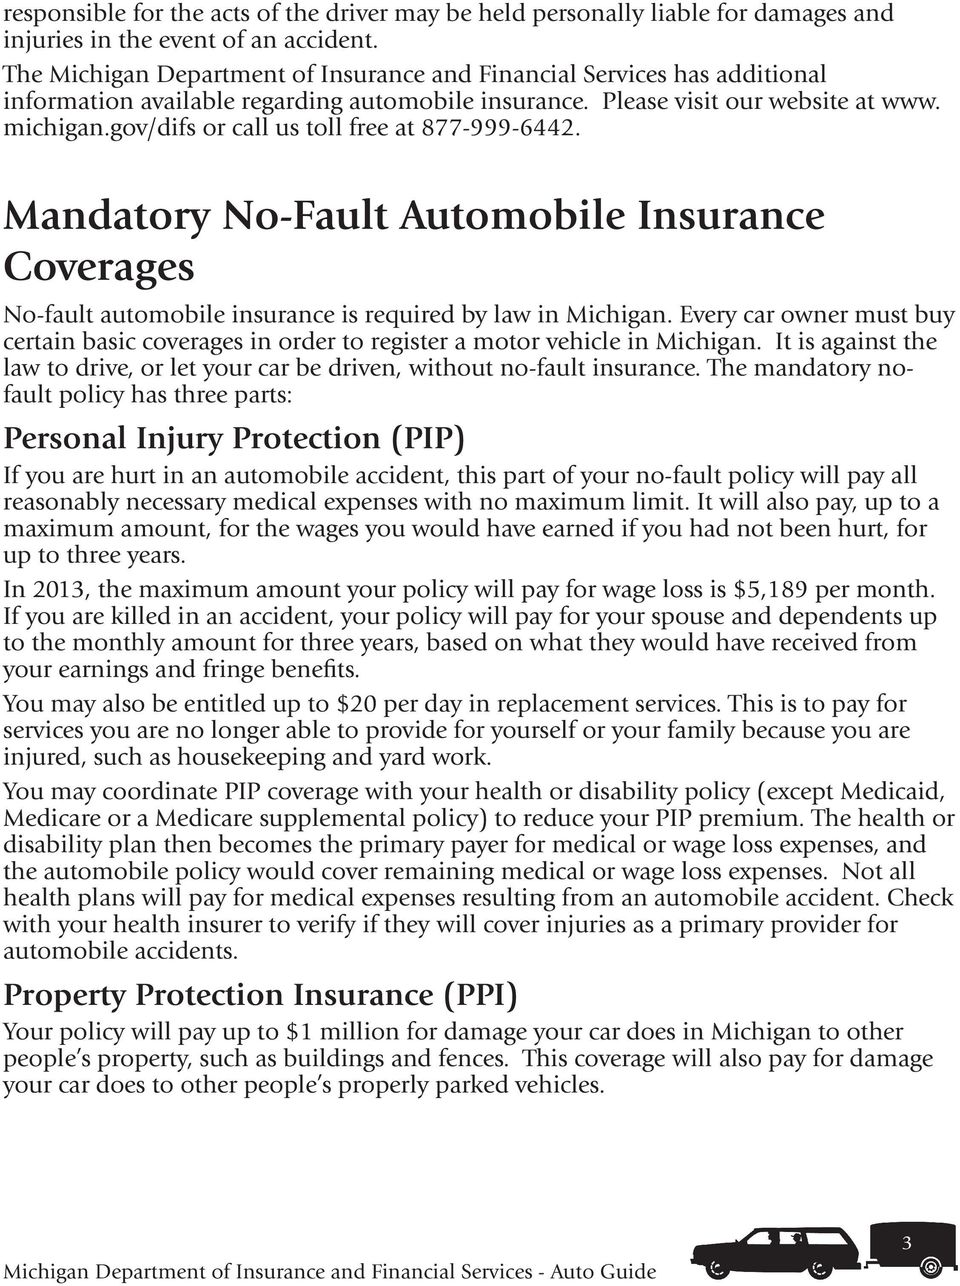 gov/difs or call us toll free at 877-999-6442. Mandatory No-Fault Automobile Insurance Coverages No-fault automobile insurance is required by law in Michigan.